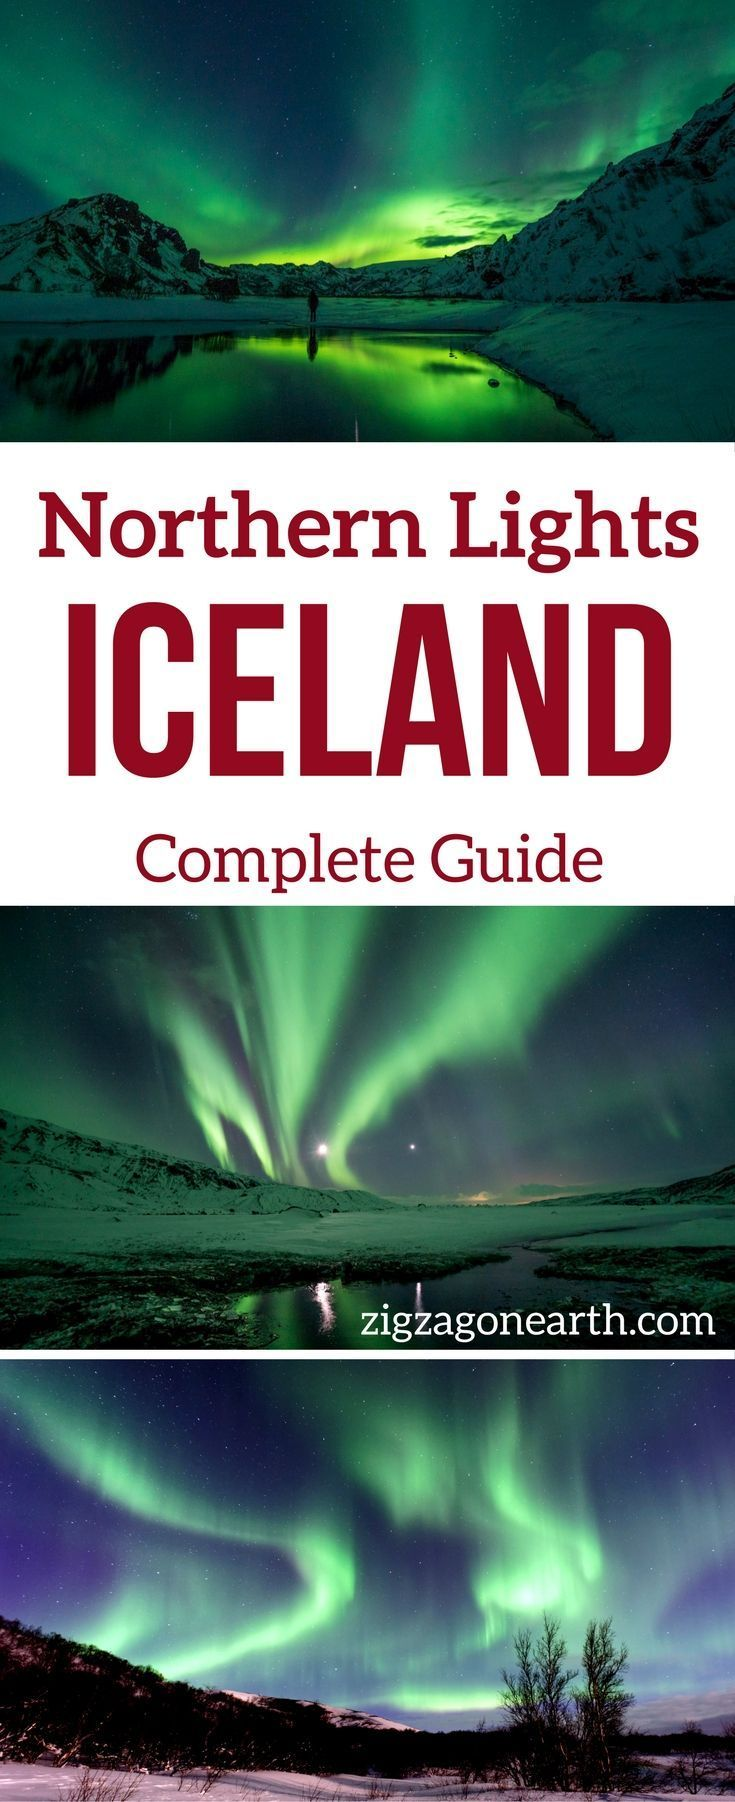 Iceland Travel Guide - Your complete guide on How to see the Northern Lights in Iceland: Conditions, Forecast, Best time, Best places, Best Tours... And how to photograph the aurora Borealis   Northern Lights Iceland   Northern Lights Photography   #Icela